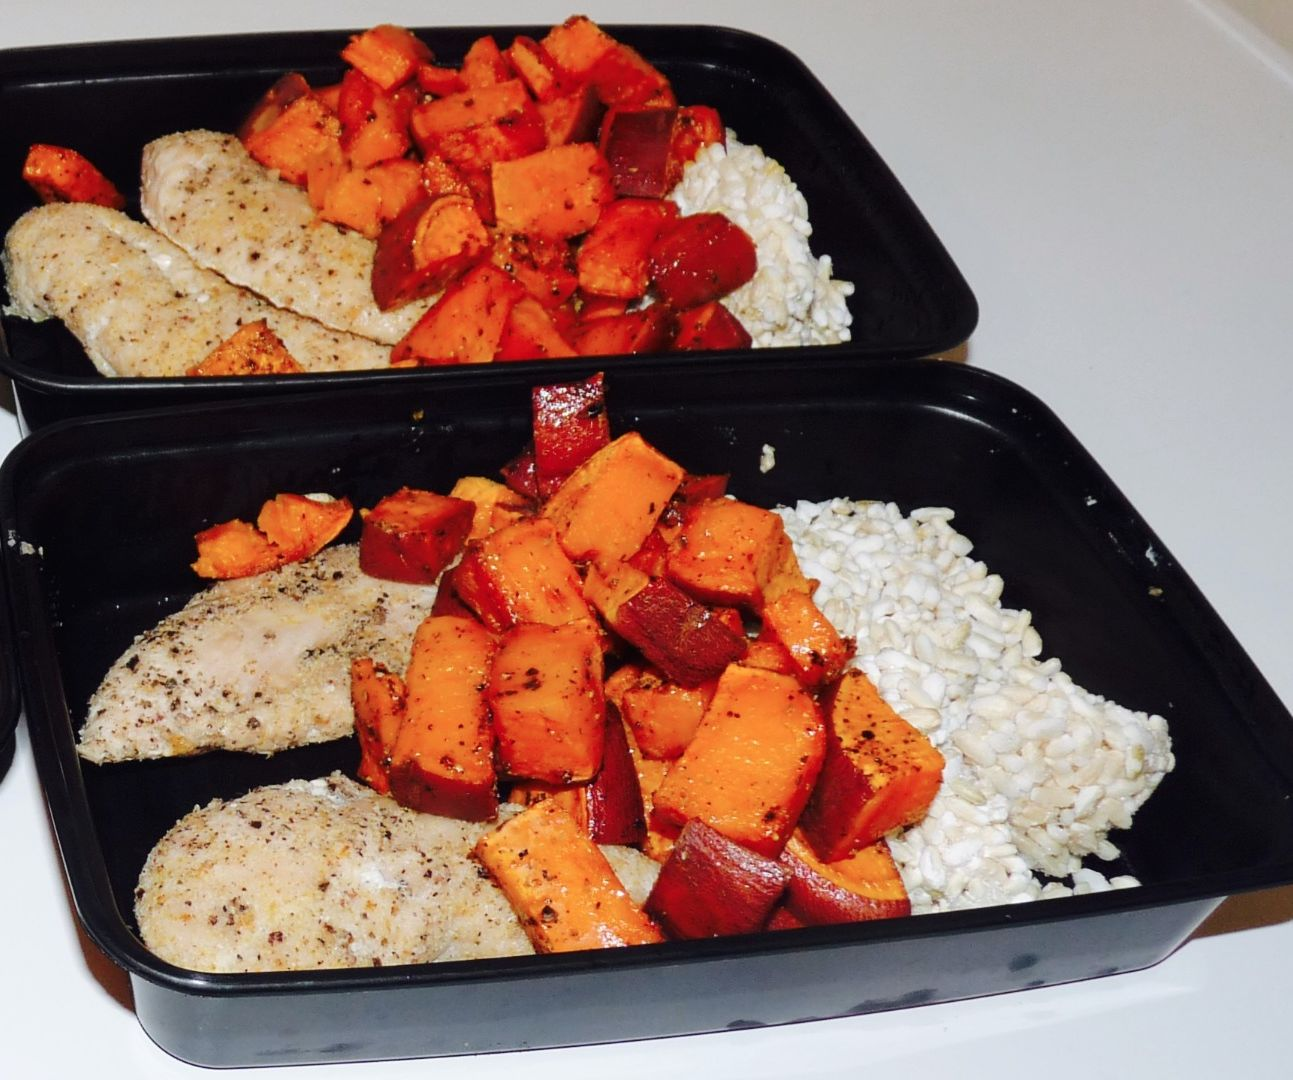 Healthy and Affordable Meal Prep 101